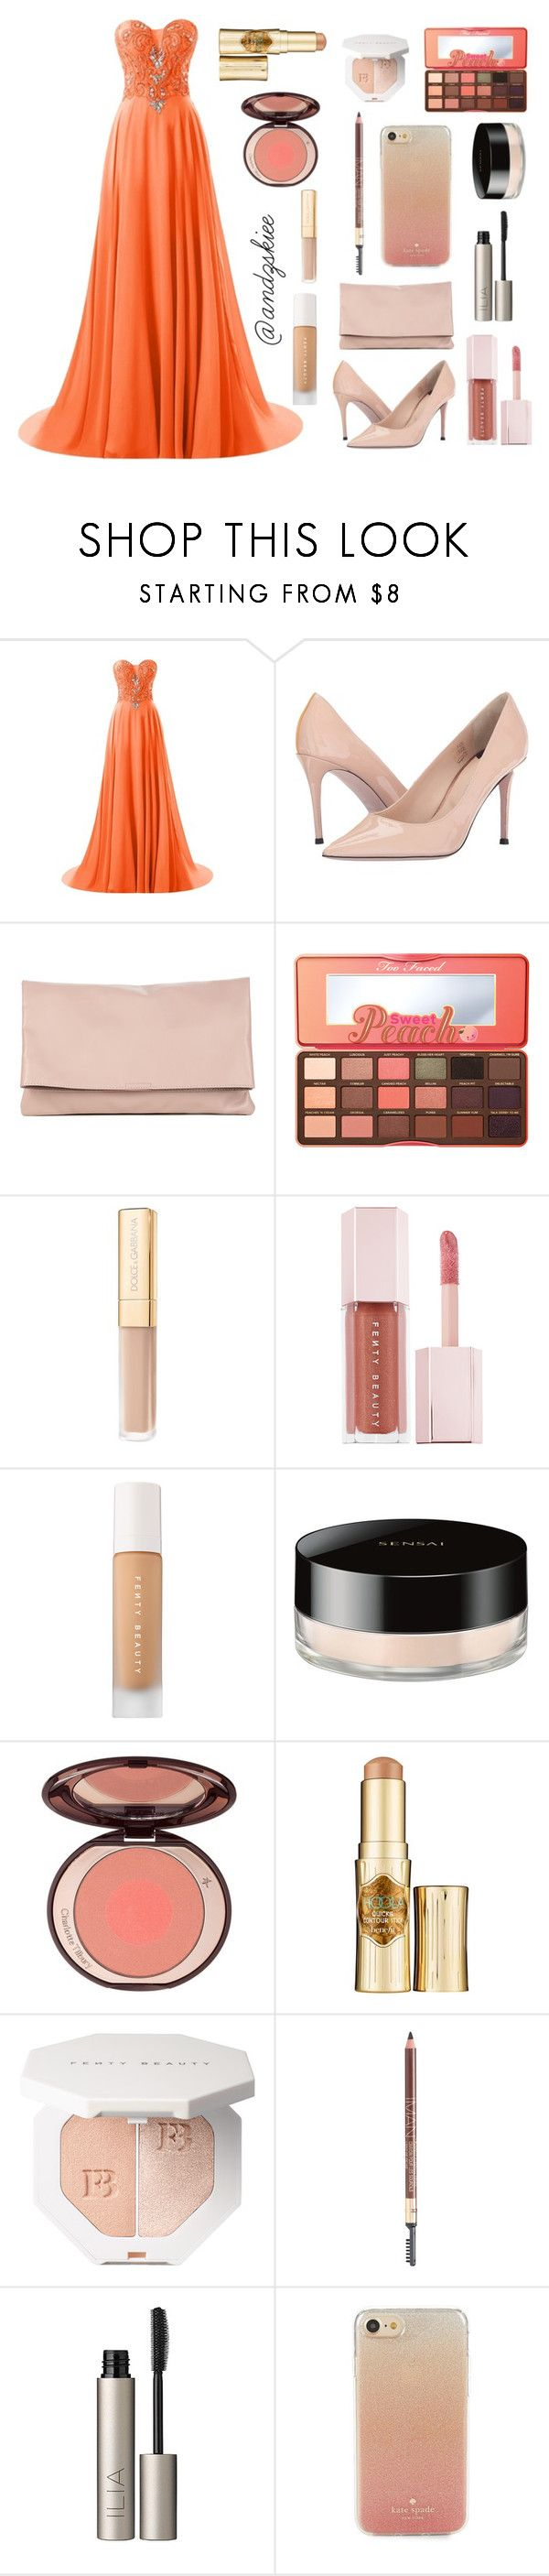 """""""prom (orange + nude)"""" by andzskiee ❤ liked on Polyvore featuring Paul Smith, Sole Society, Too Faced Cosmetics, Dolce&Gabbana, Puma, Sensai, Benefit, Iman, Ilia and Kate Spade"""